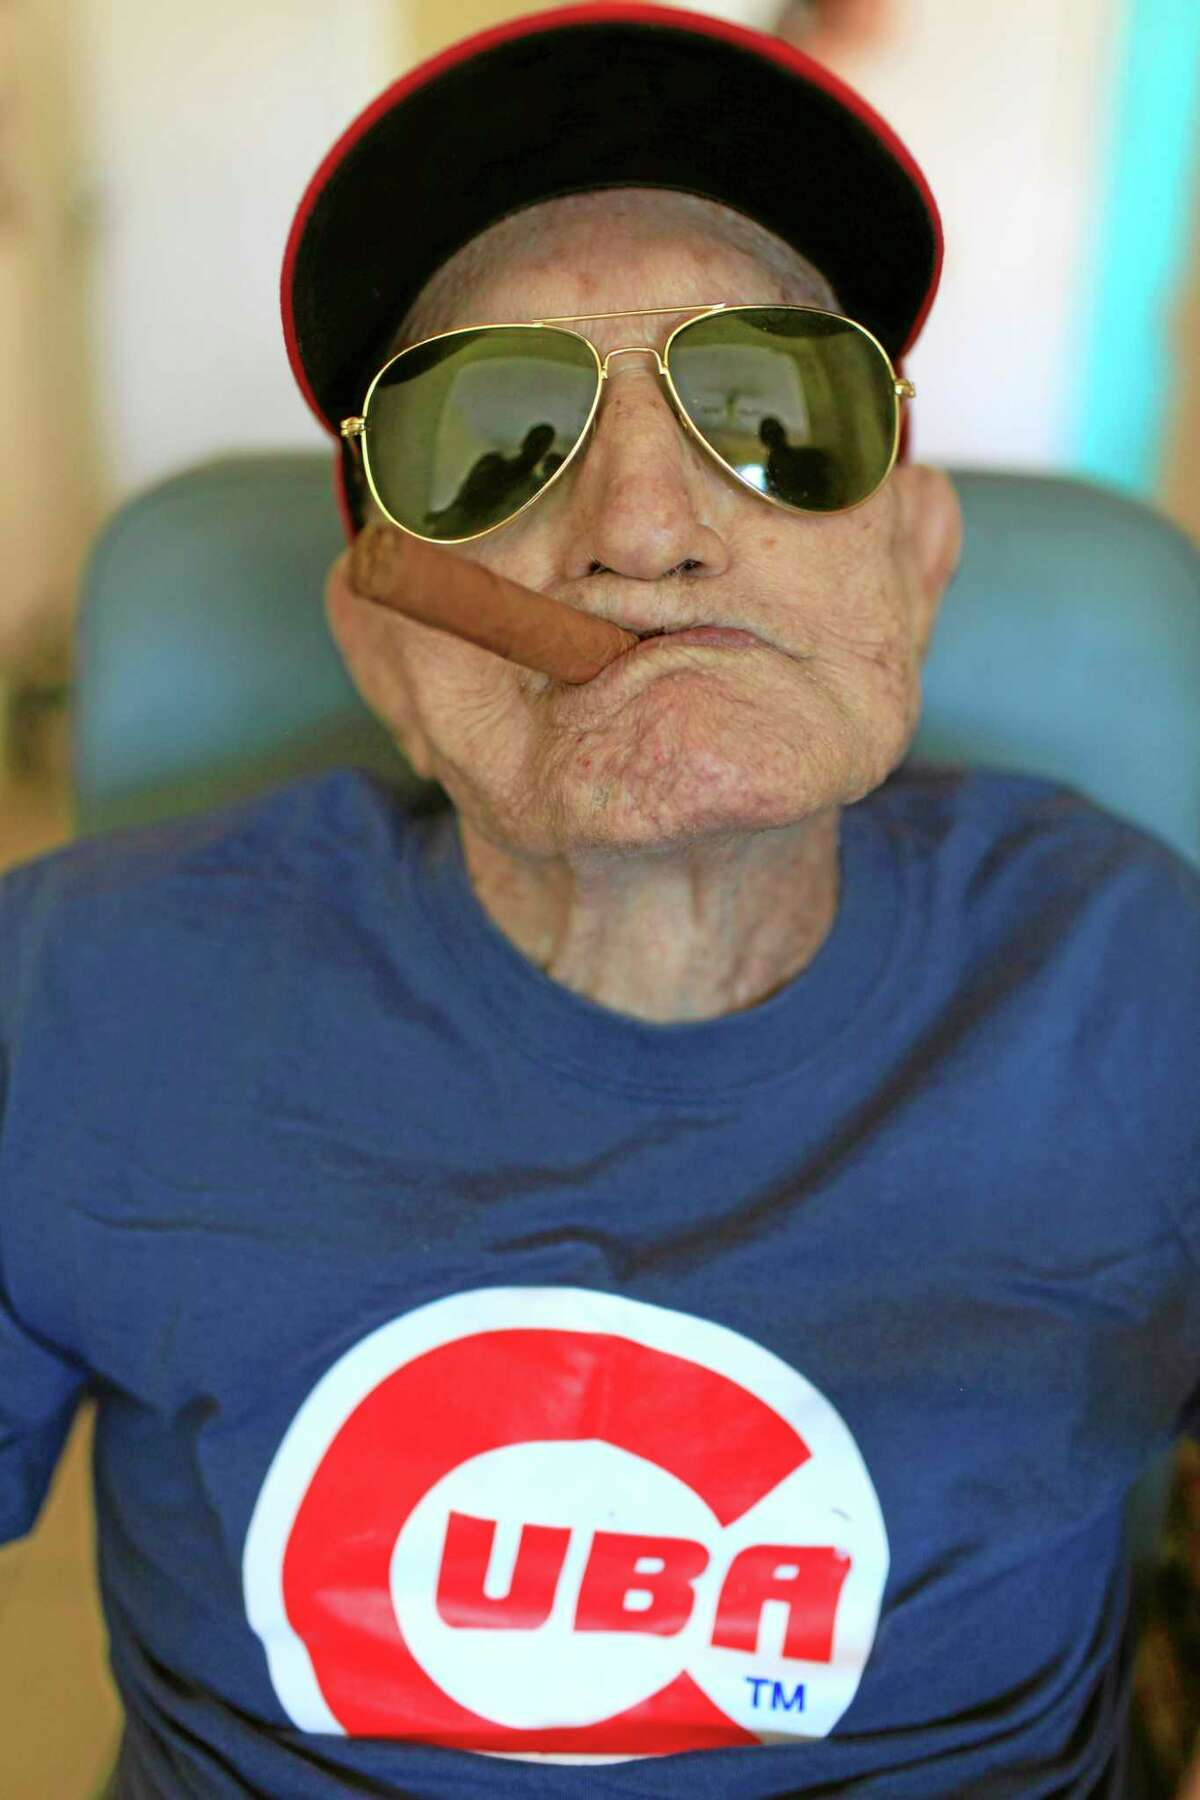 """In this April 25, 2013 file photo, Conrado Marrero, the world's oldest living former Major League Baseball player, poses for a photo on his 102 birthday at his home in Havana, Cuba. Family members say Marrero died Wednesday in Havana, just two days short of his 103rd birthday. Marrero was a diminutive right-hander who went by the nickname """"Connie"""" when he pitched for the Washington Senators in the 1950s."""